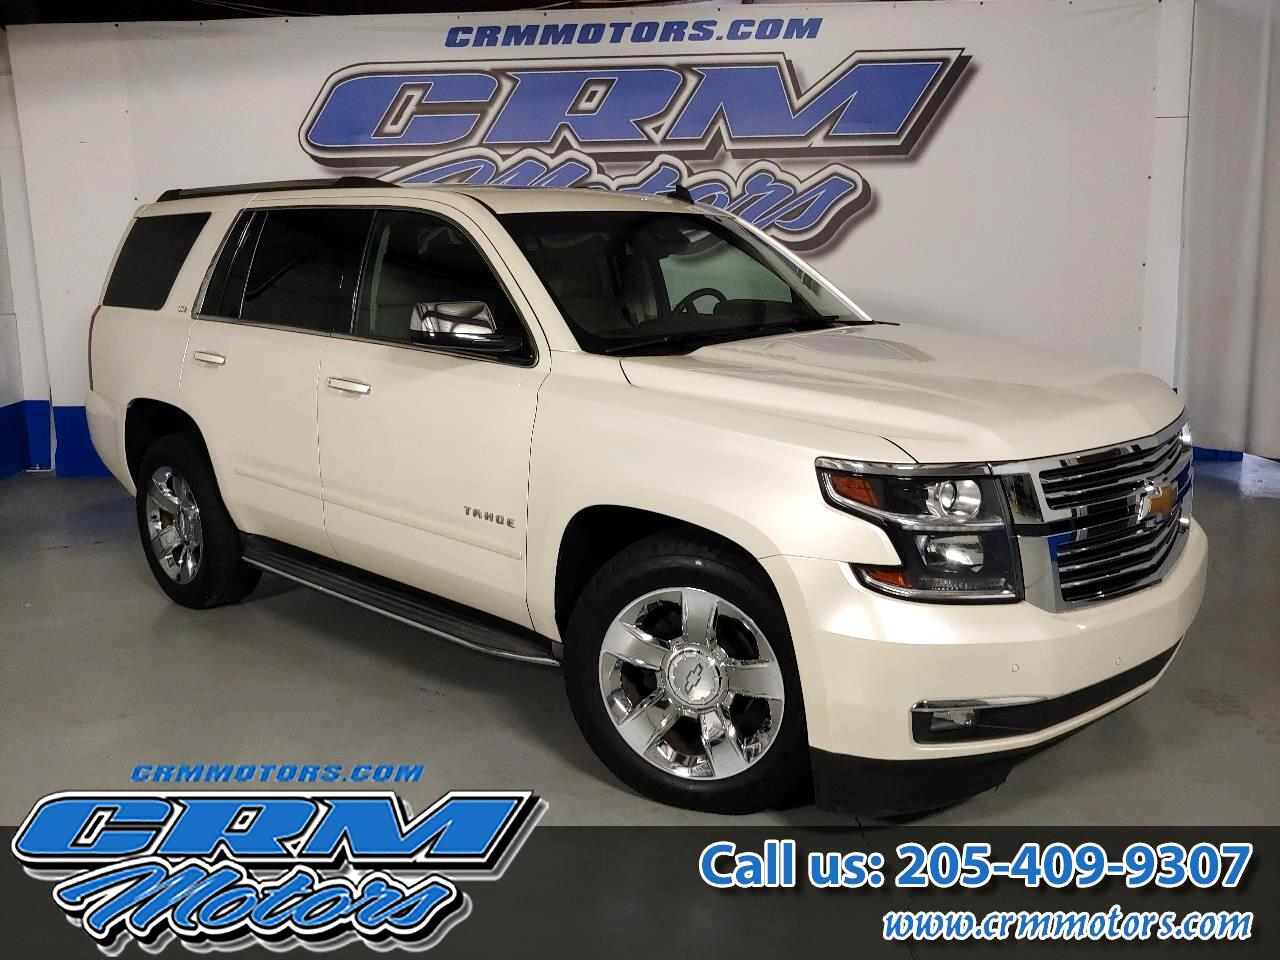 2015 Chevrolet Tahoe 4WD LTZ EVERY OPTION, HTD/CLD SEATS, & MORE!